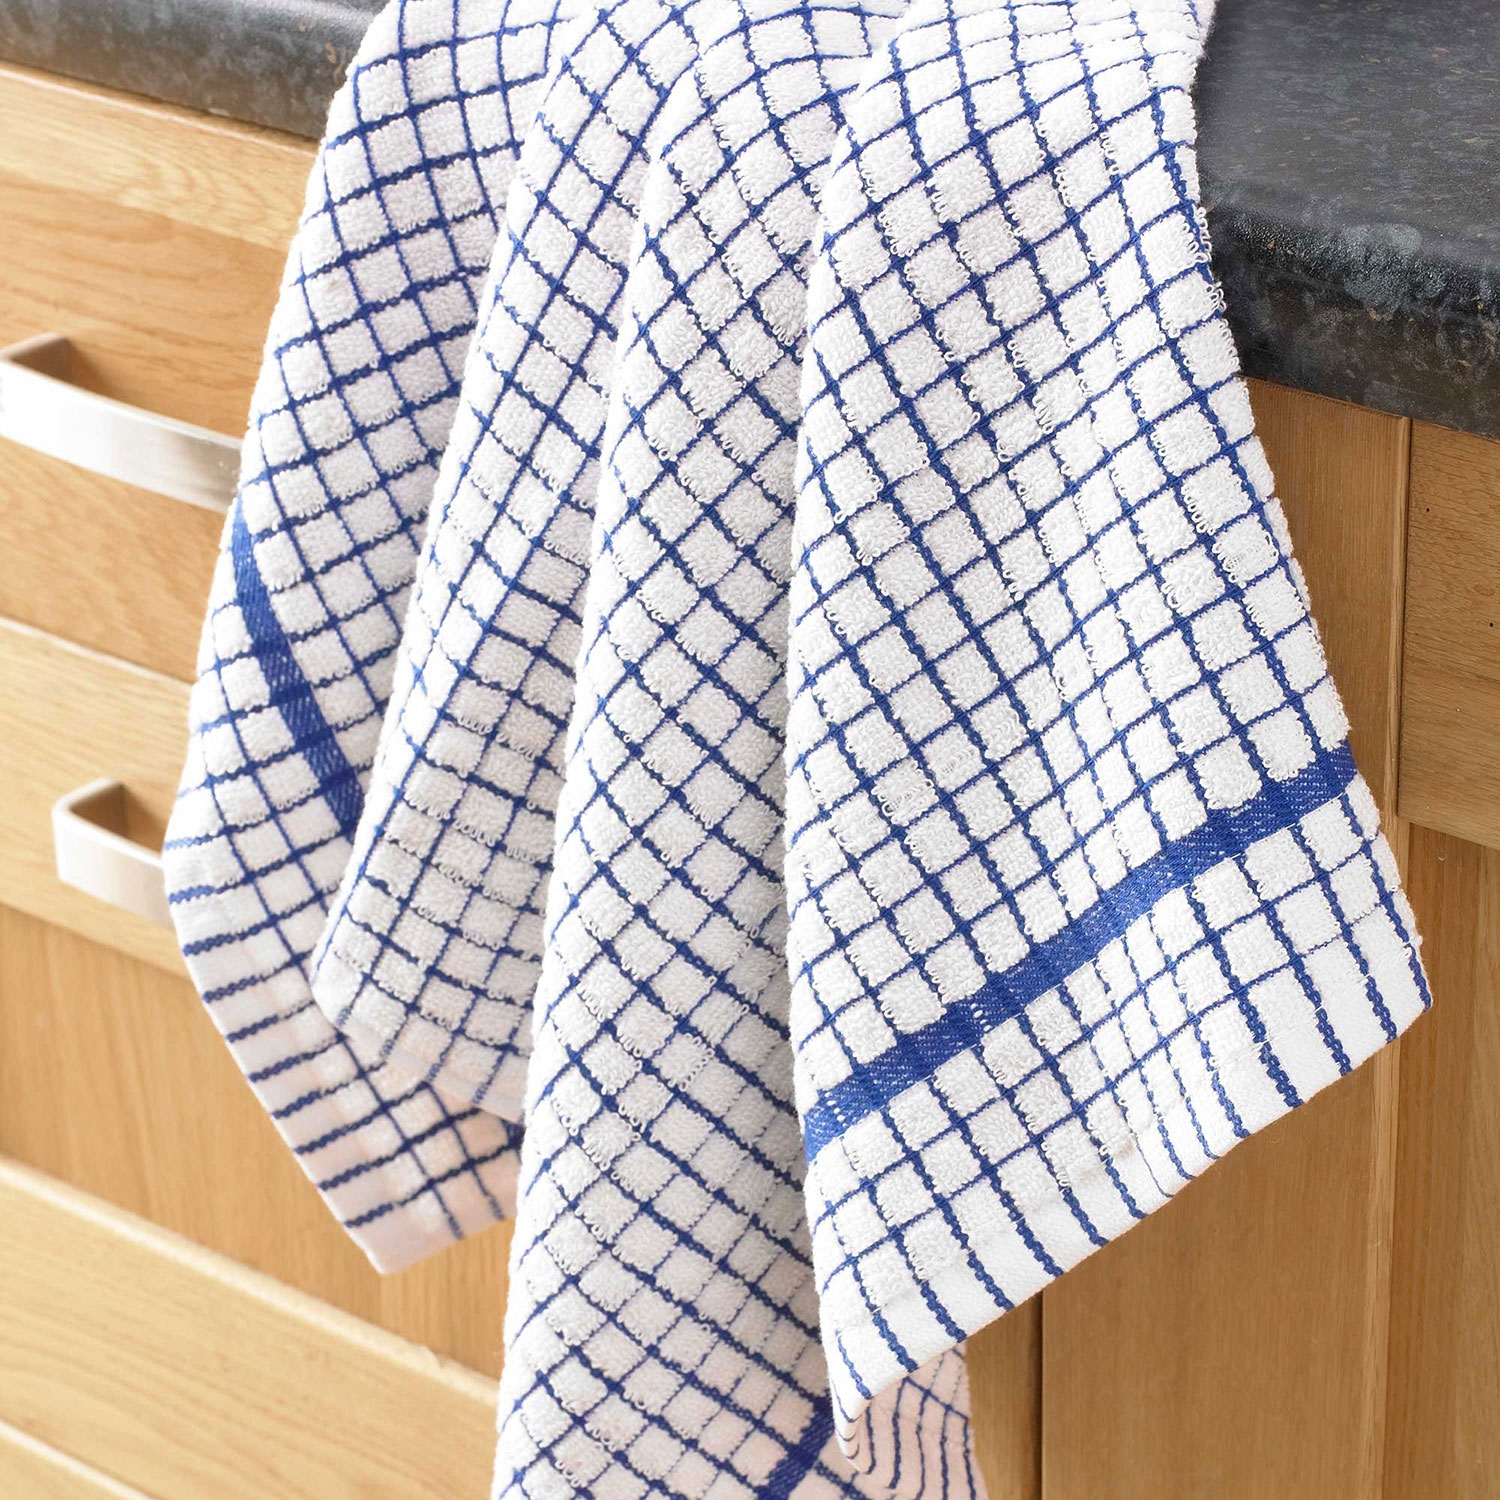 Kitchen-towel-blue.jpg